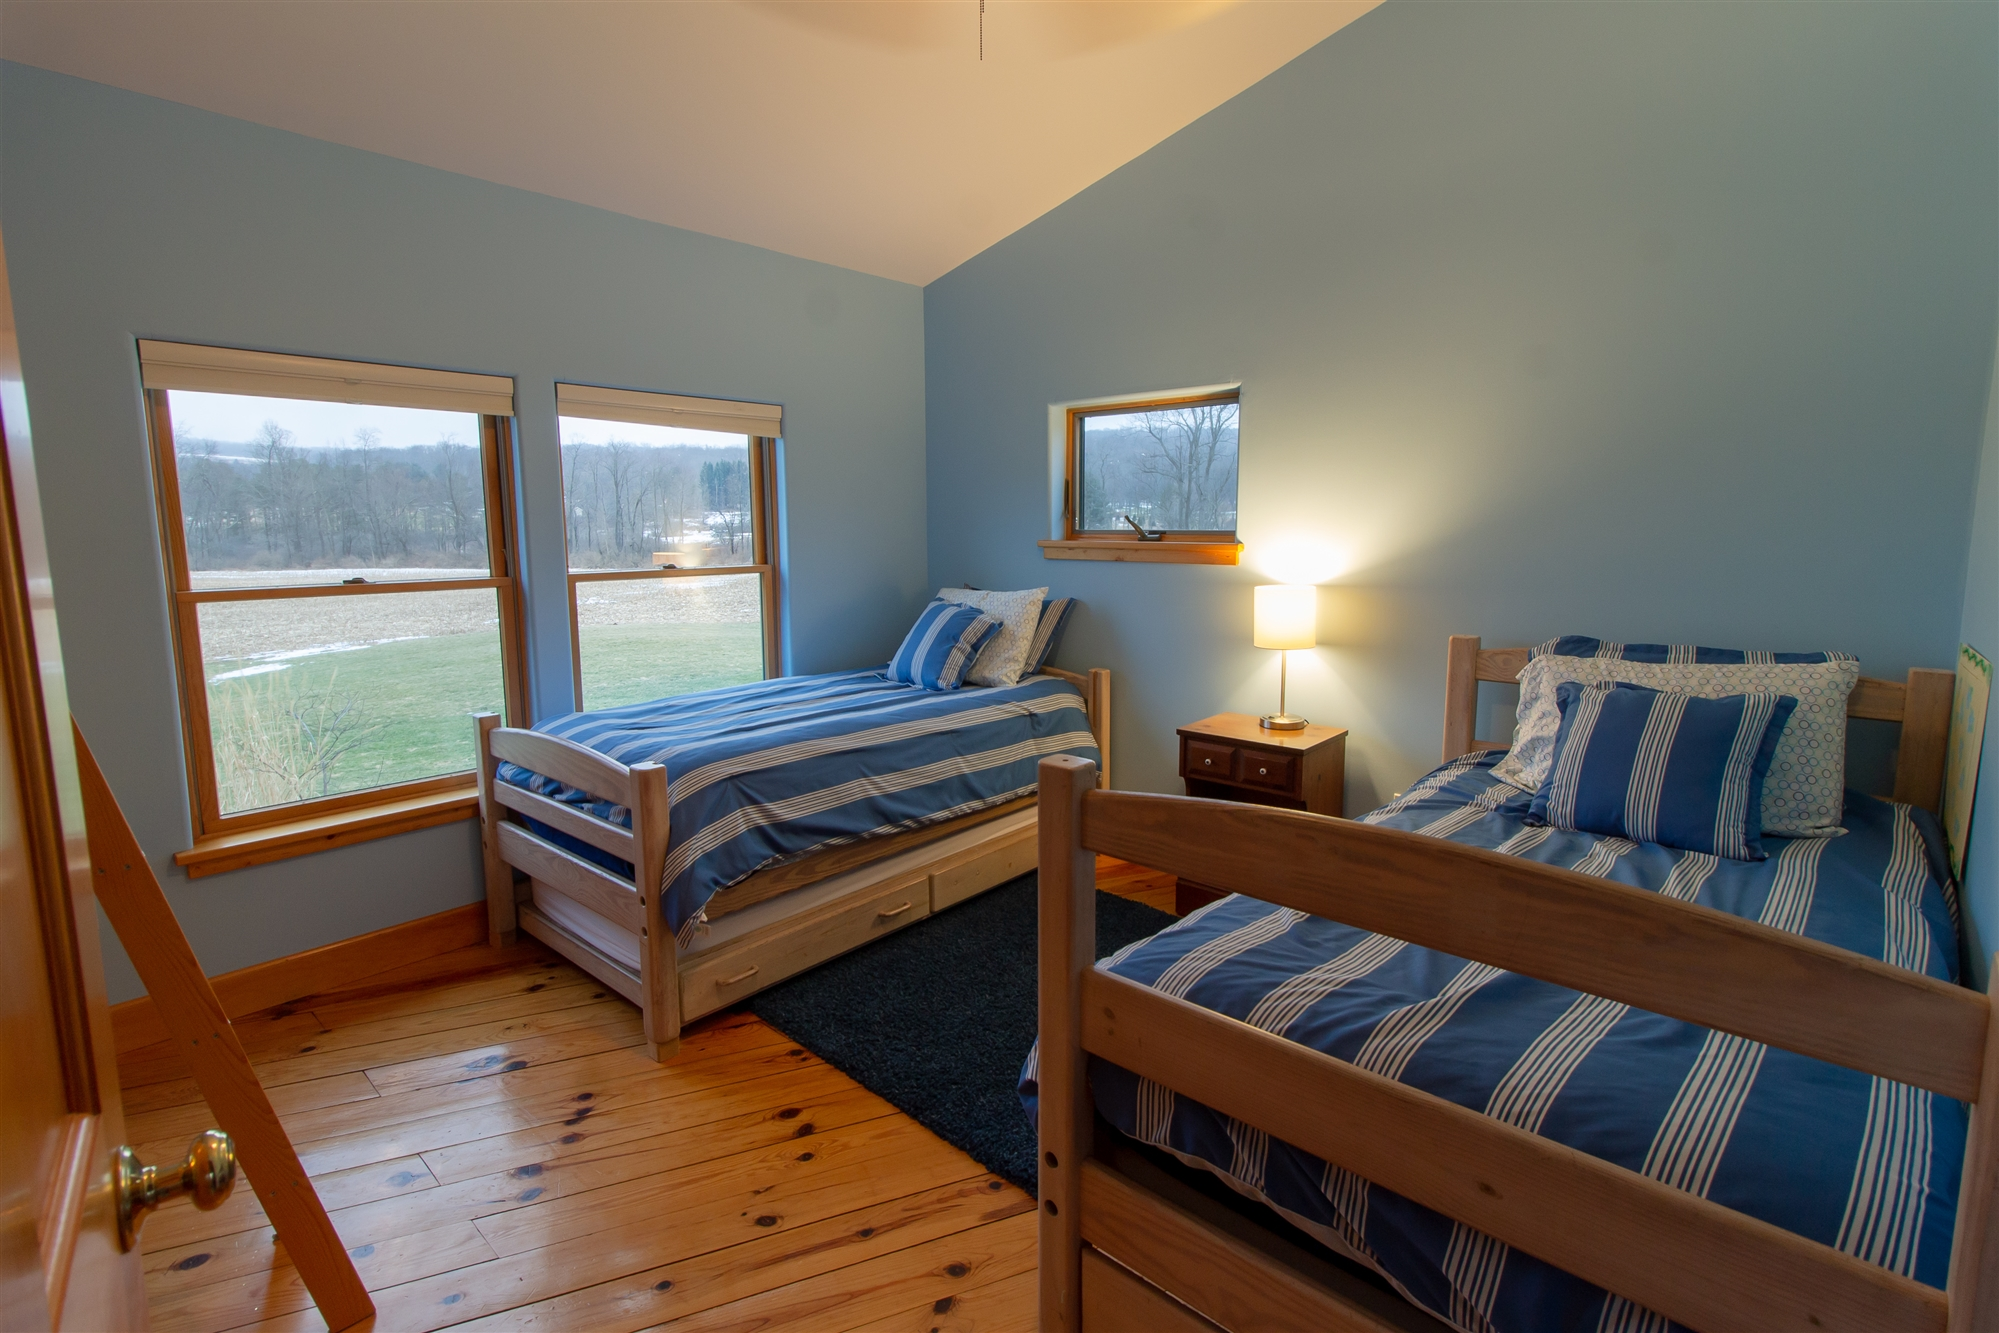 Image for Bunkhouse Blue Room